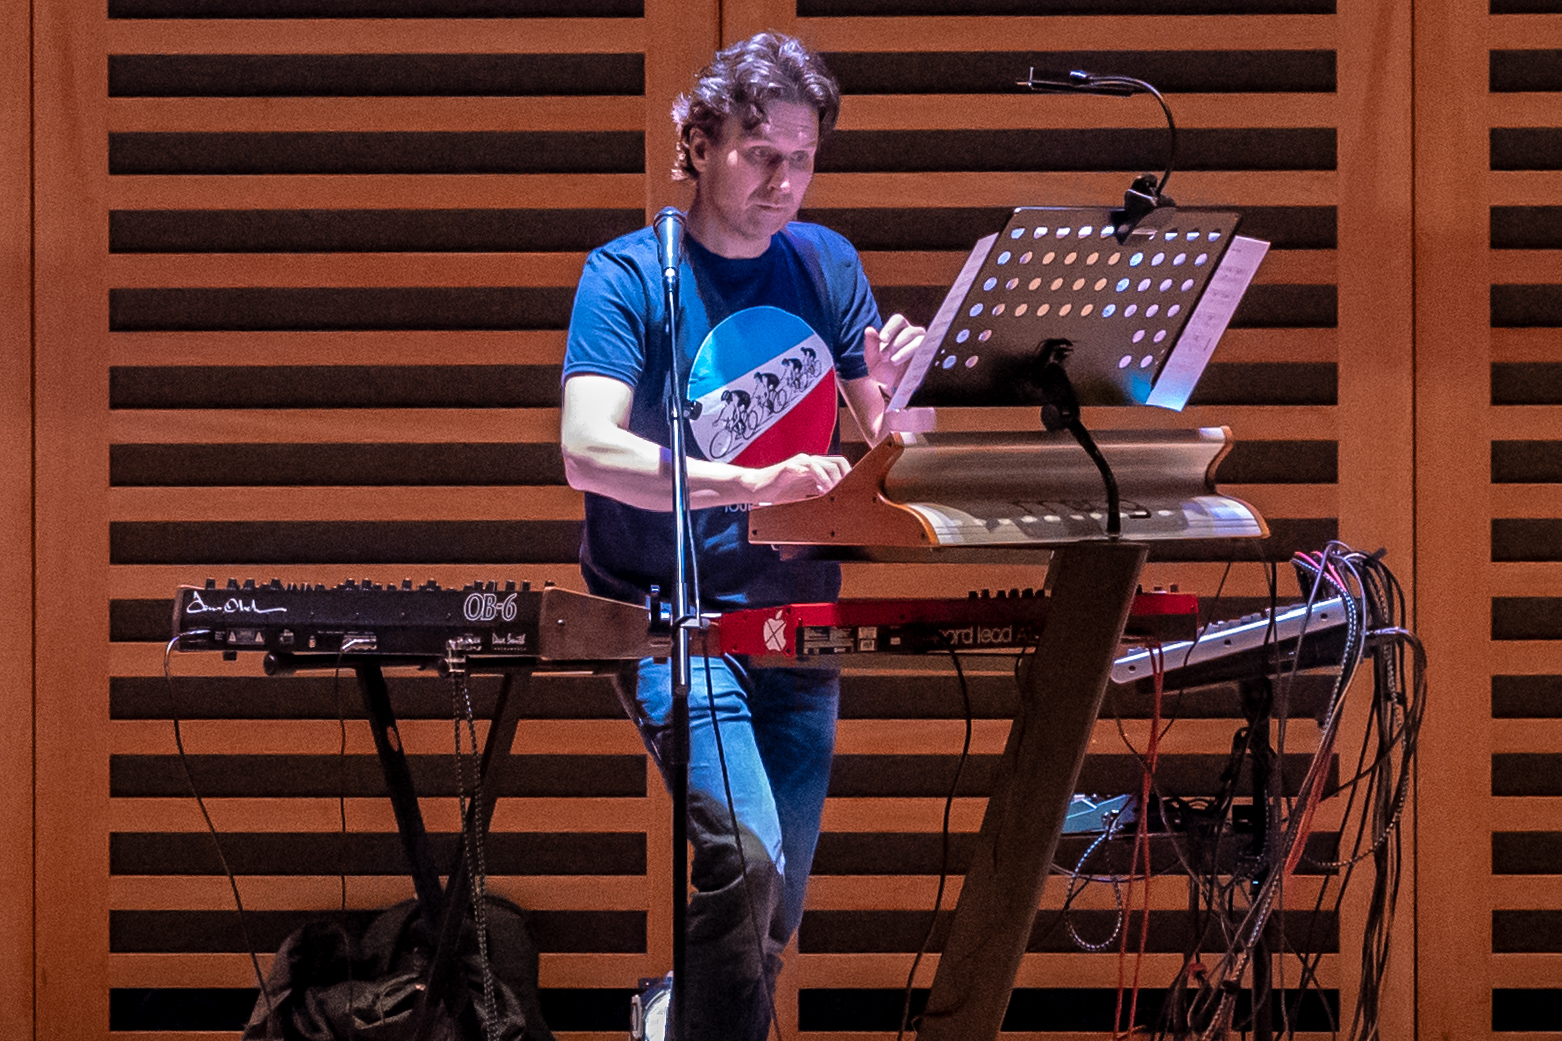 Playing synths at Kings Place